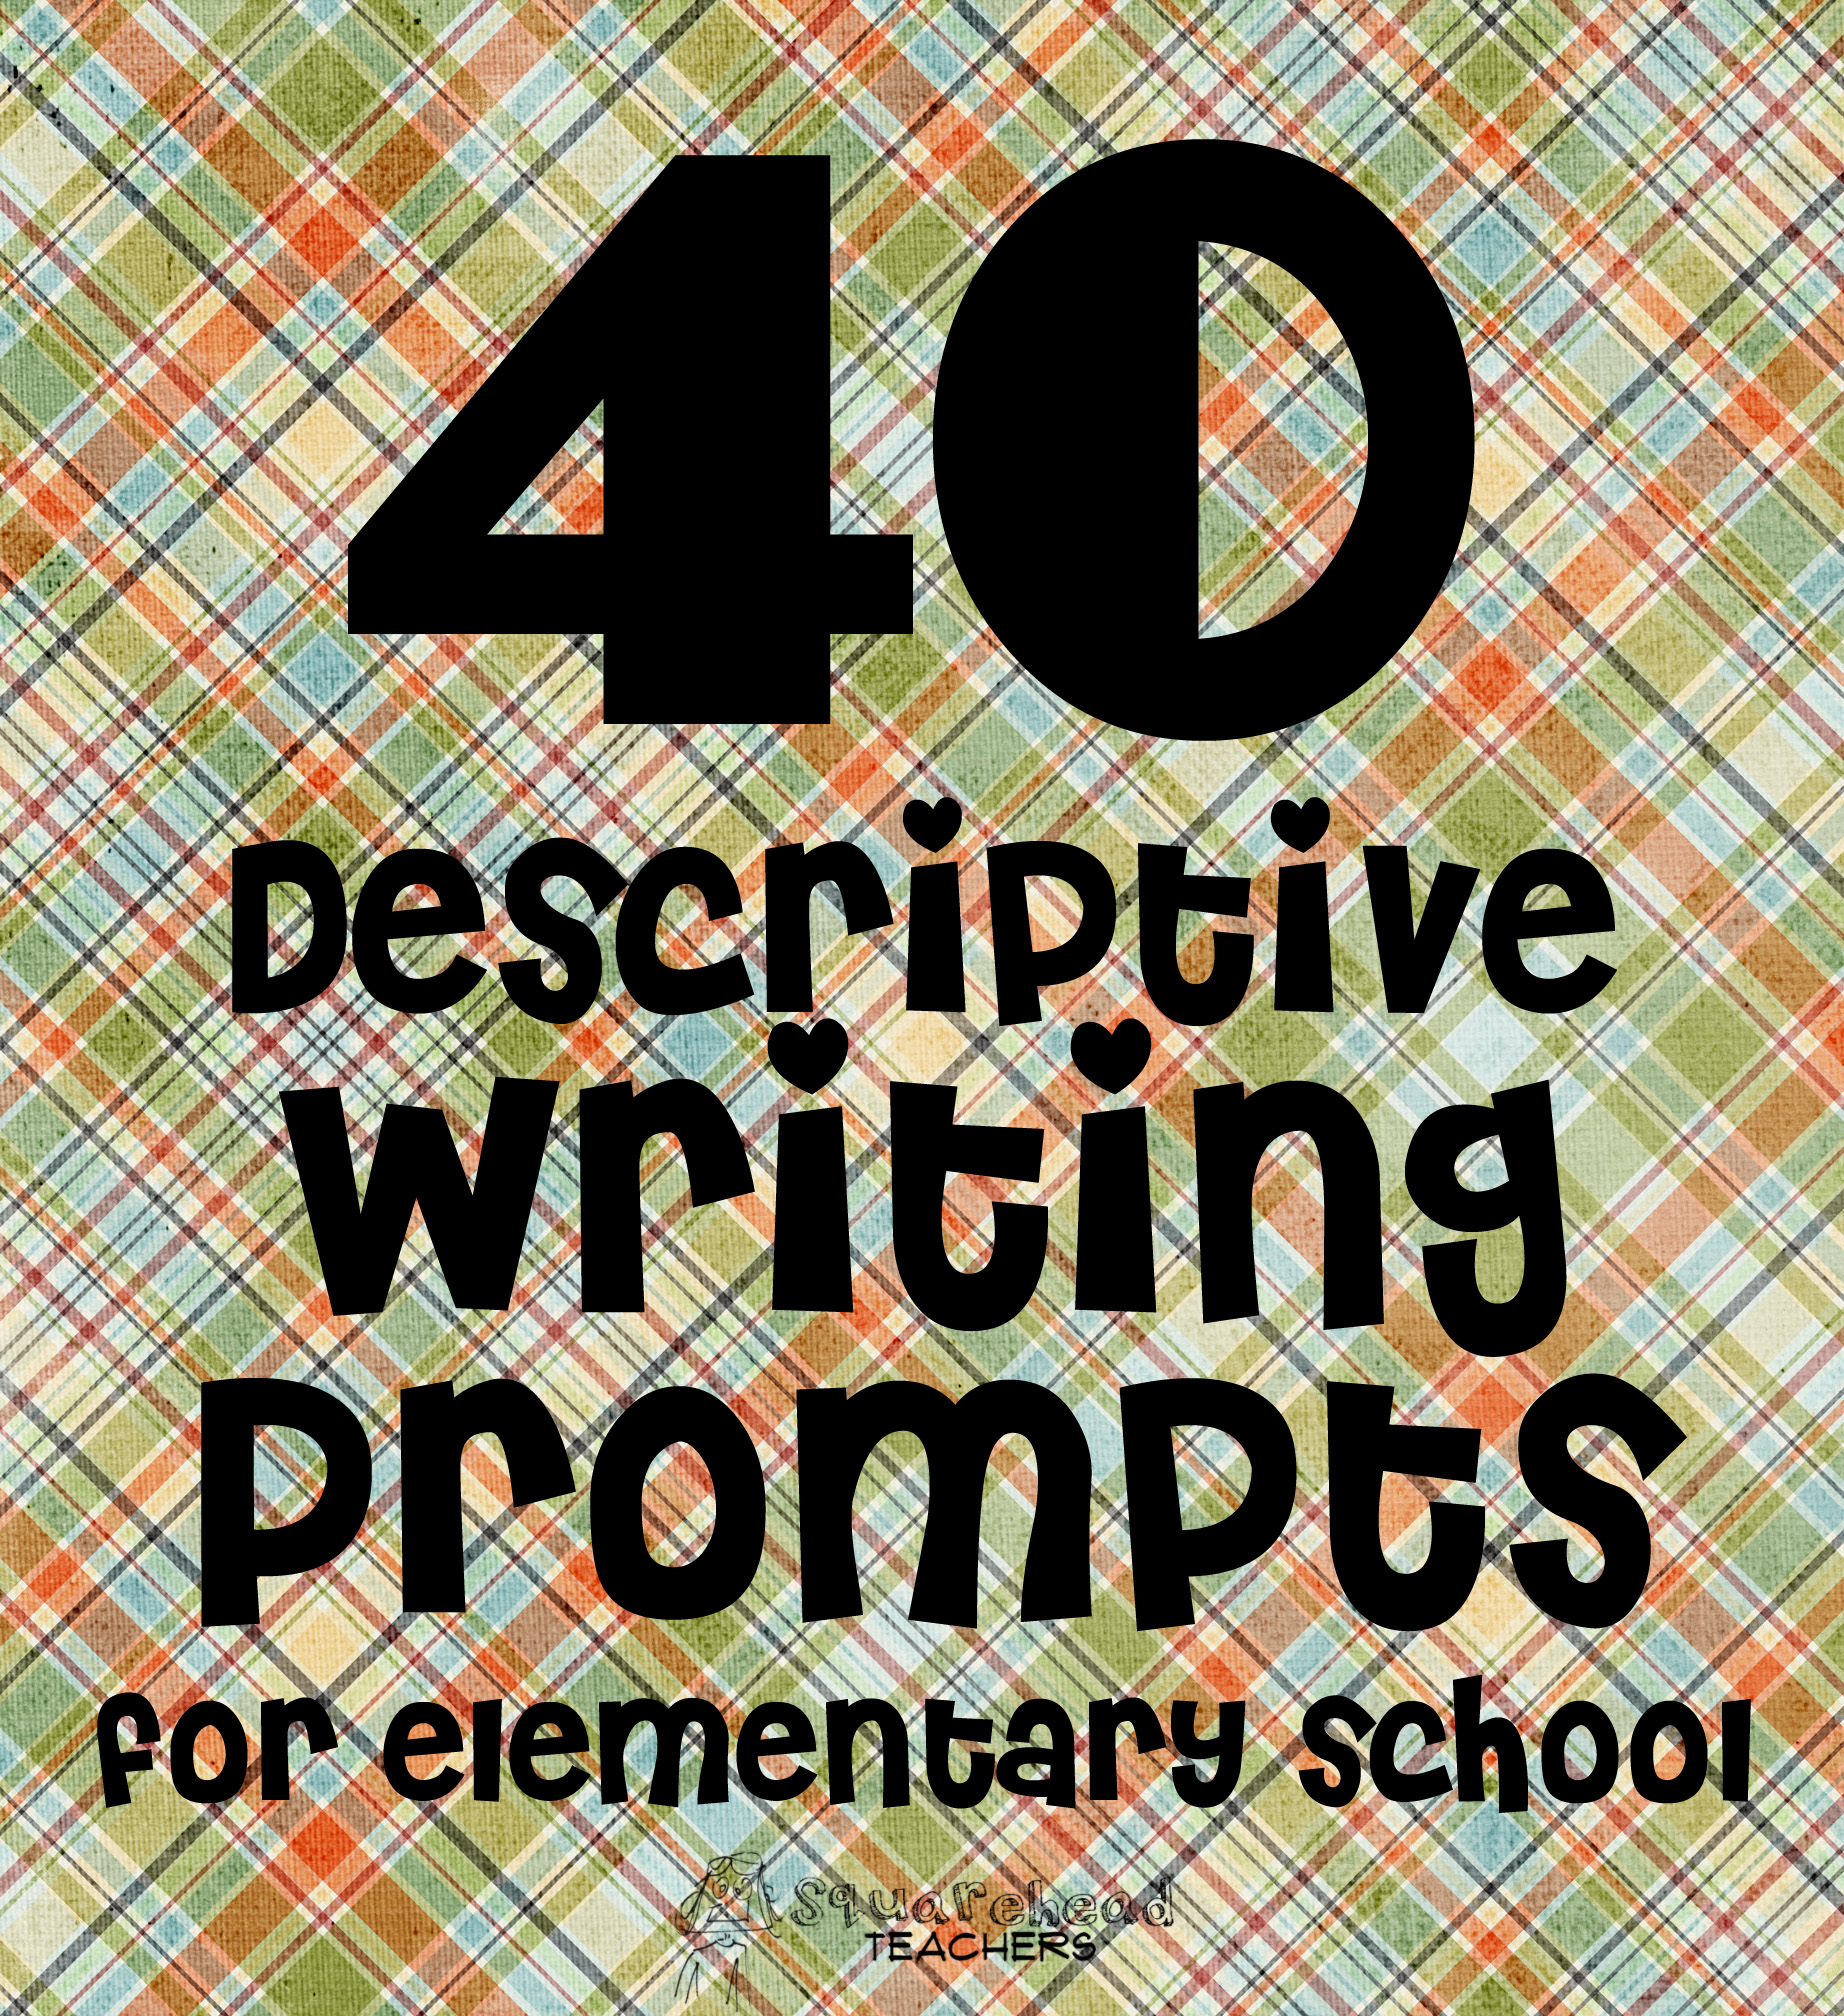 descriptive writing prompts for elementary school squarehead 40 descriptive writing prompts for elem school